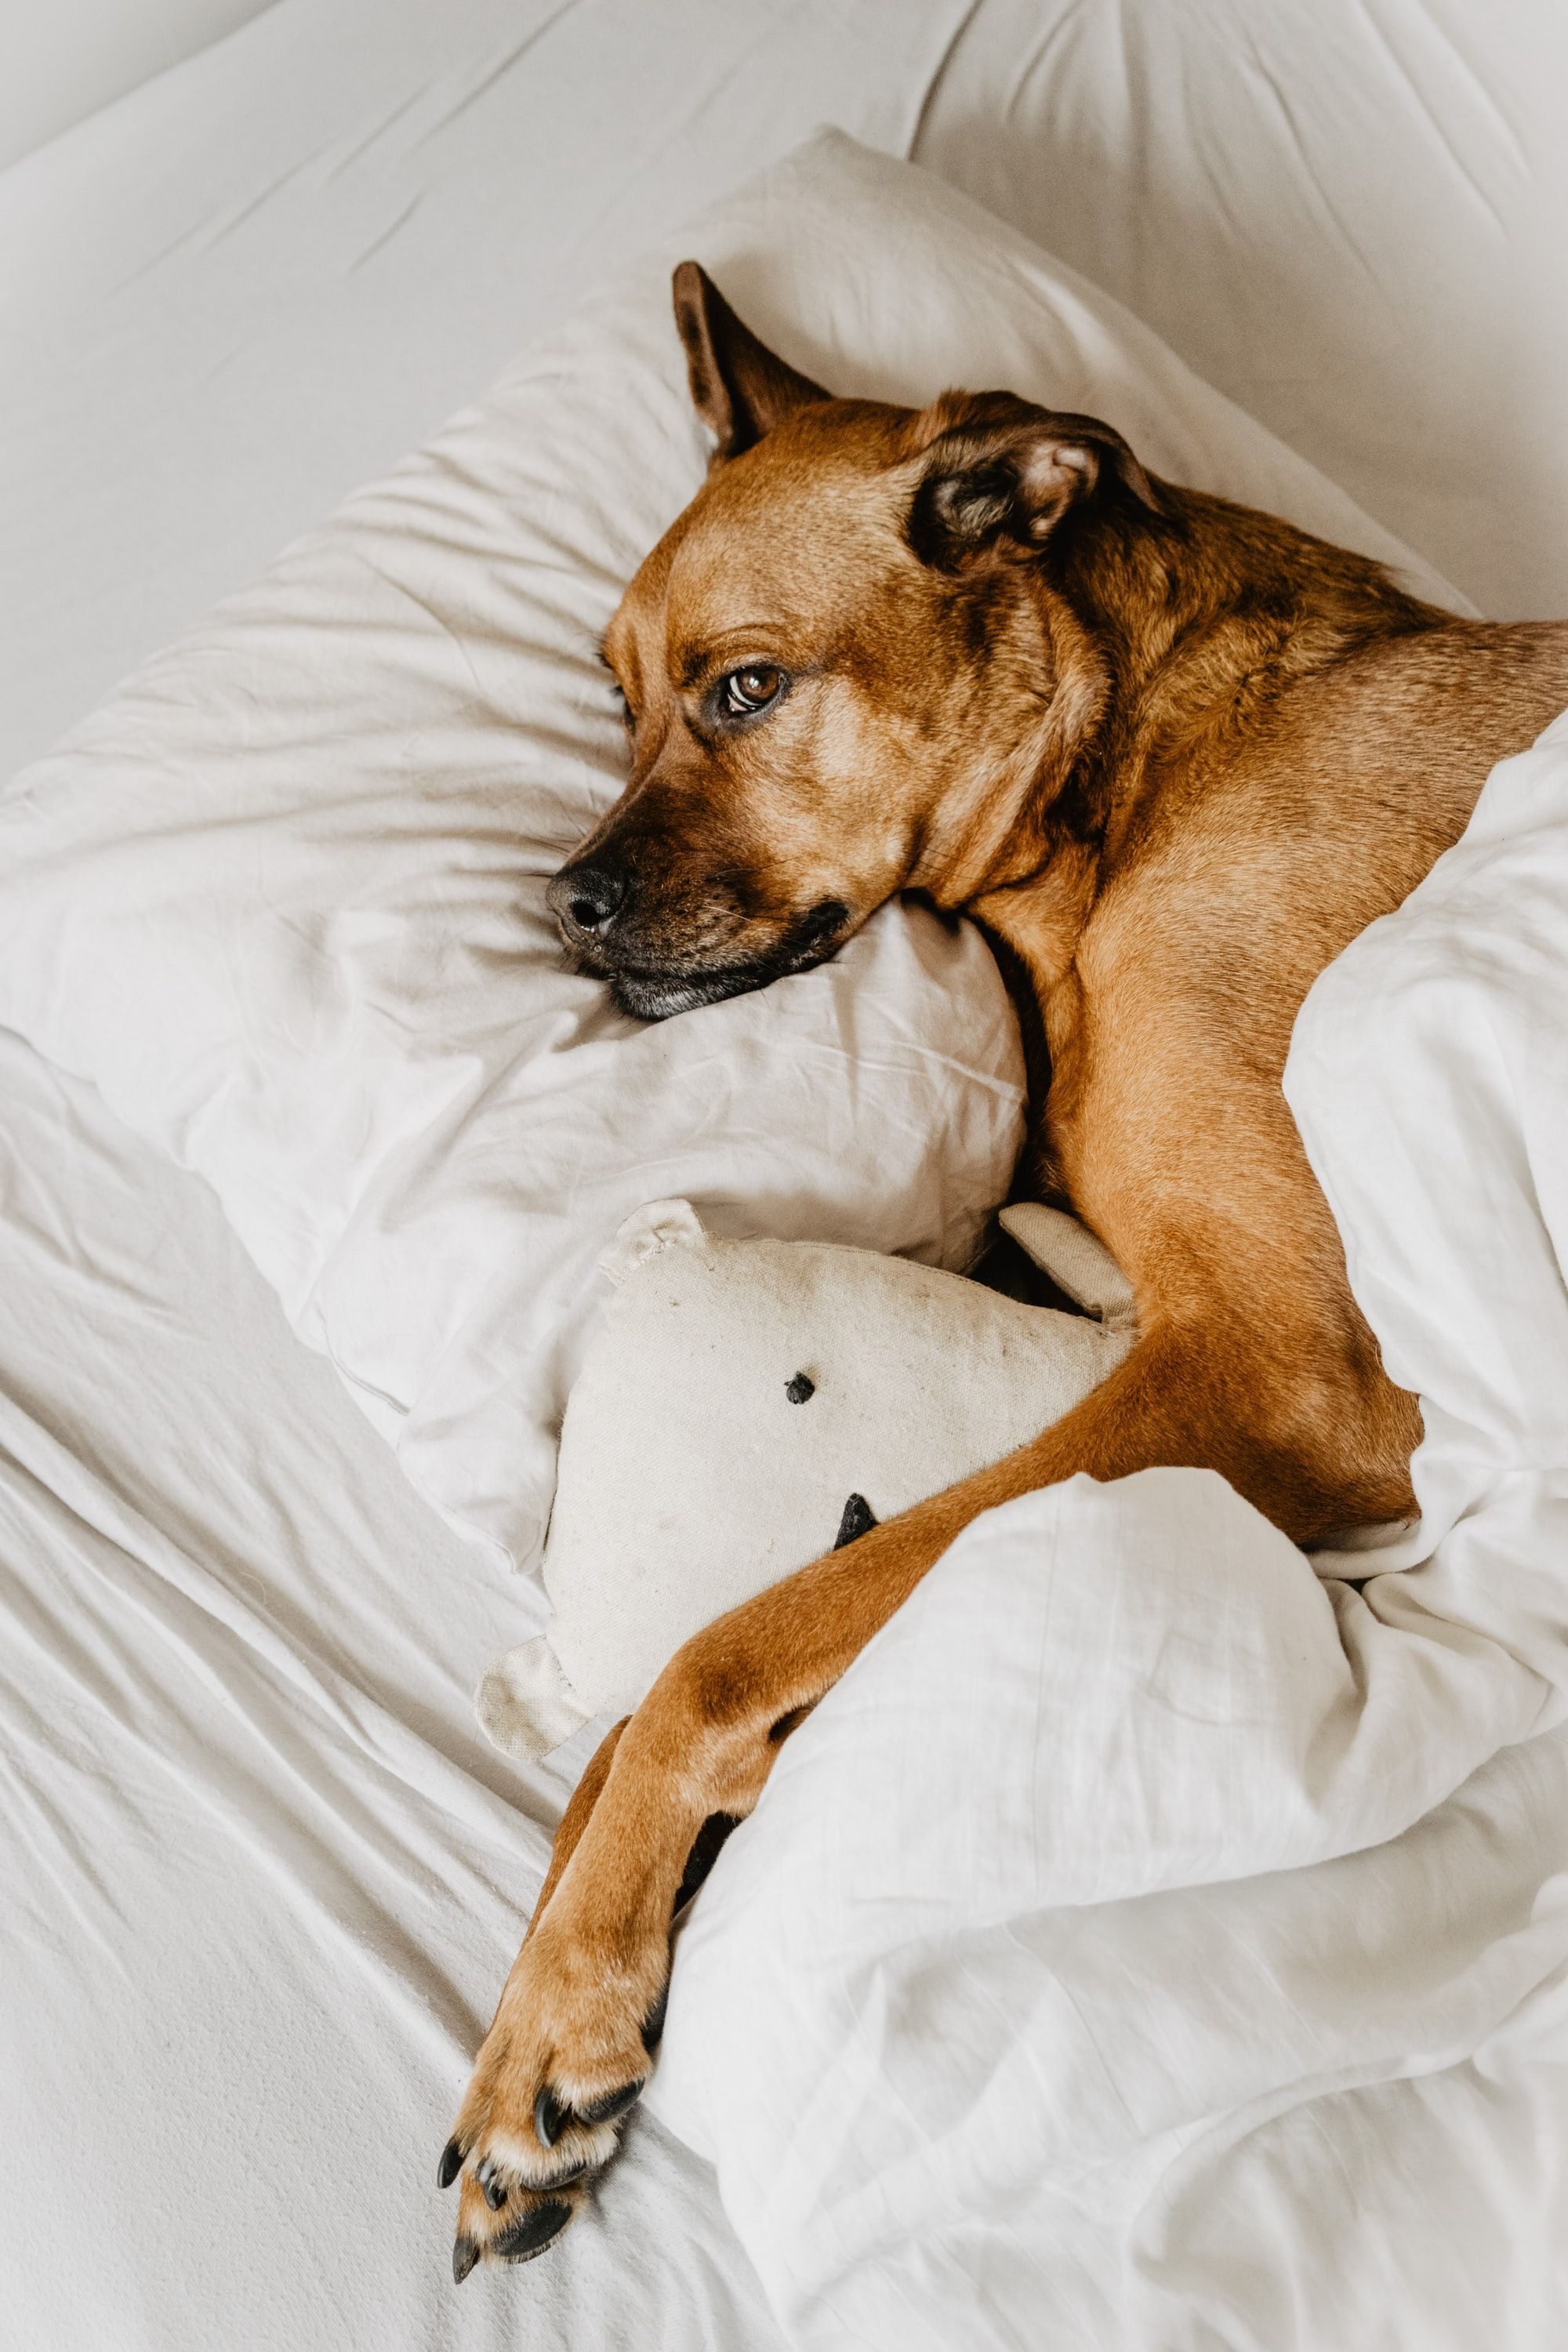 Can Dogs Have Nightmares?